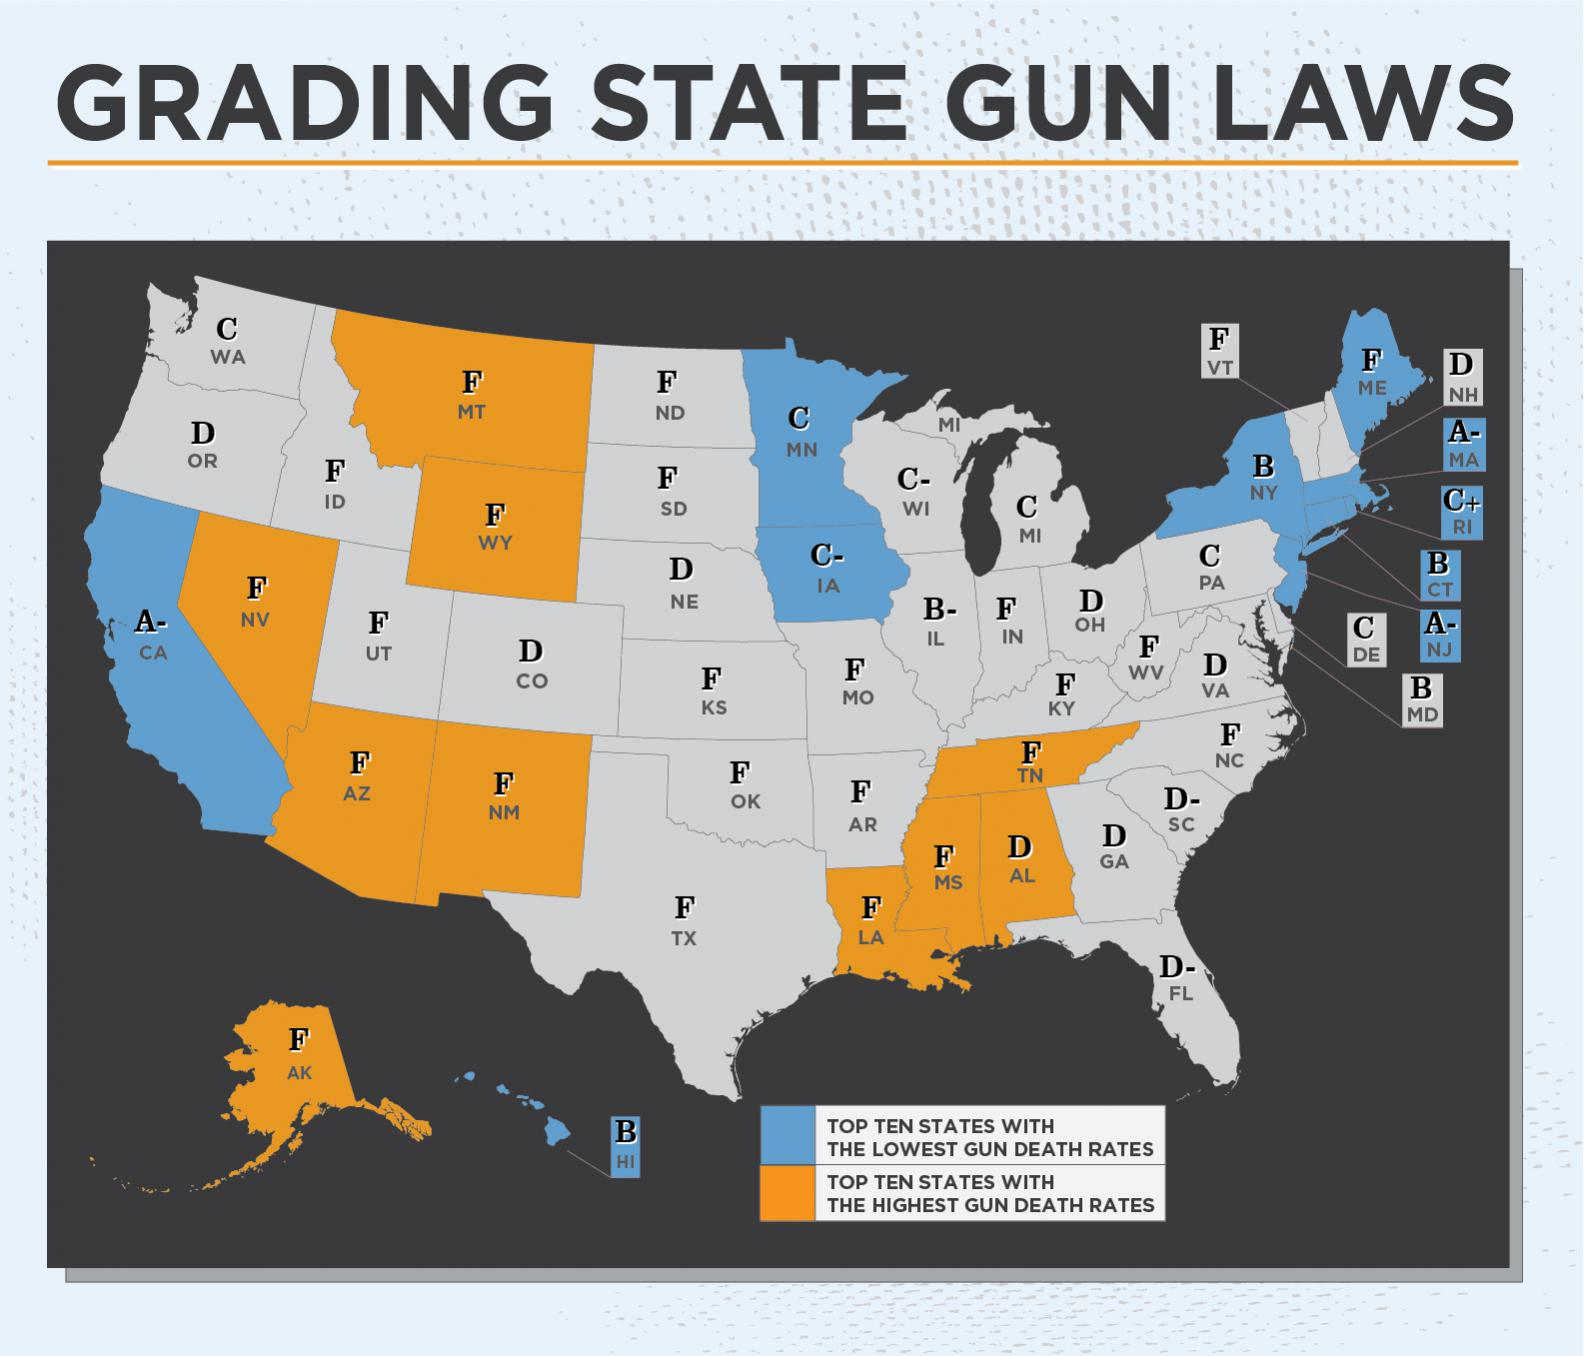 the us government should be implementing stricter gun laws Gun sales typically skyrocket in response to unconstitutional efforts by government to subvert the second amendment, creating the very problem gun bans attempt to reduce gun collectors and.